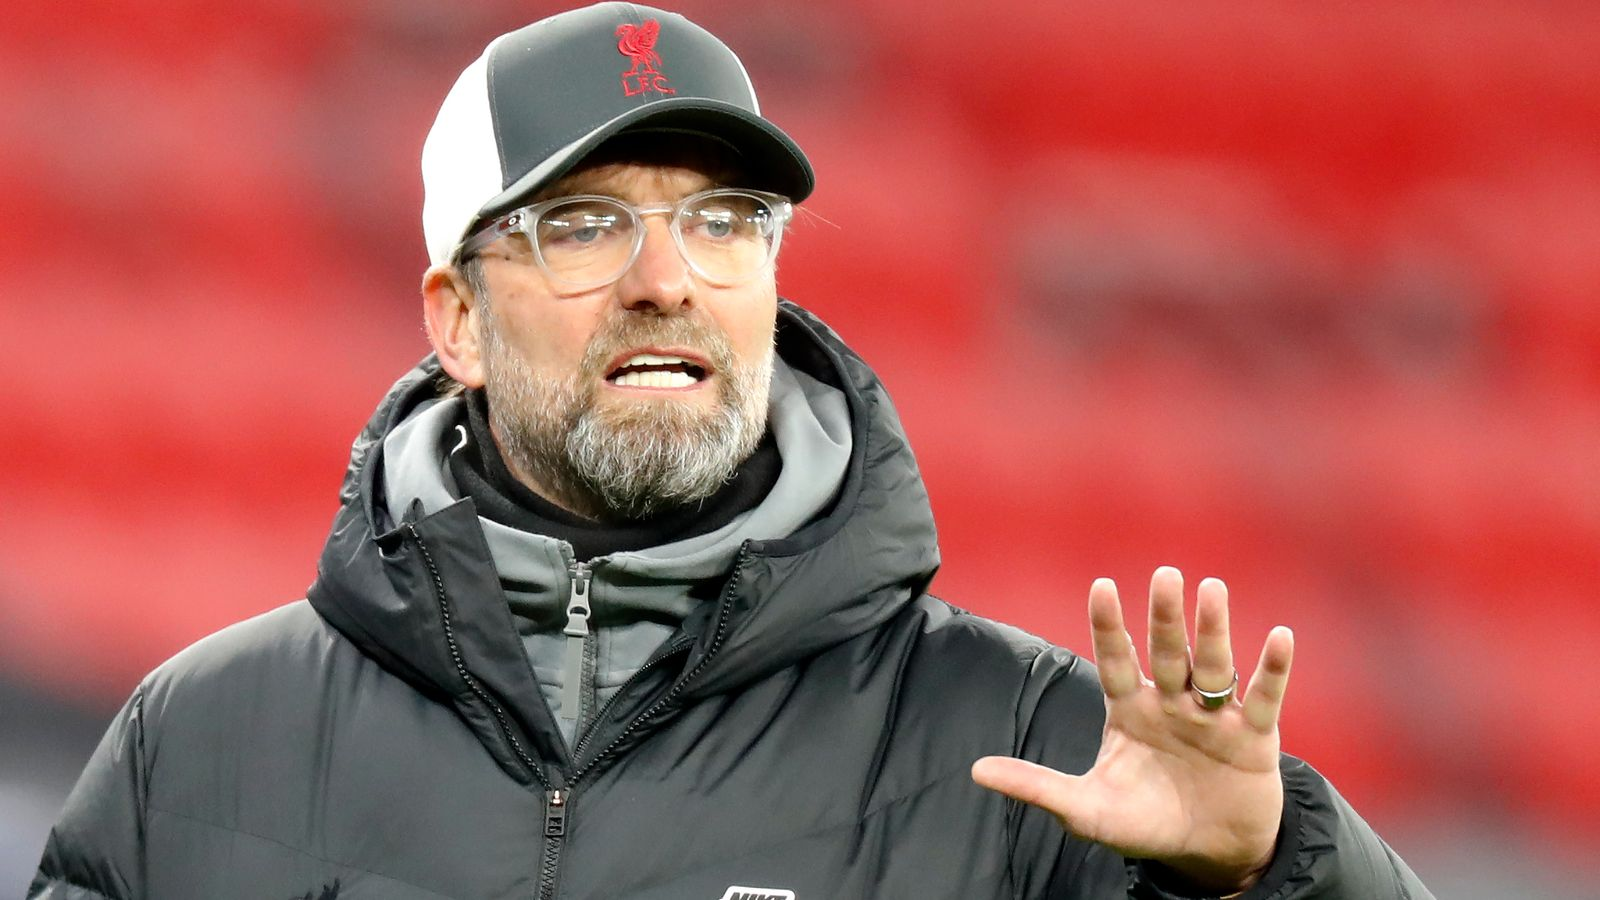 Jürgen Klopp says Liverpool international players will not be released this month if they are to be quarantined upon return |  football news